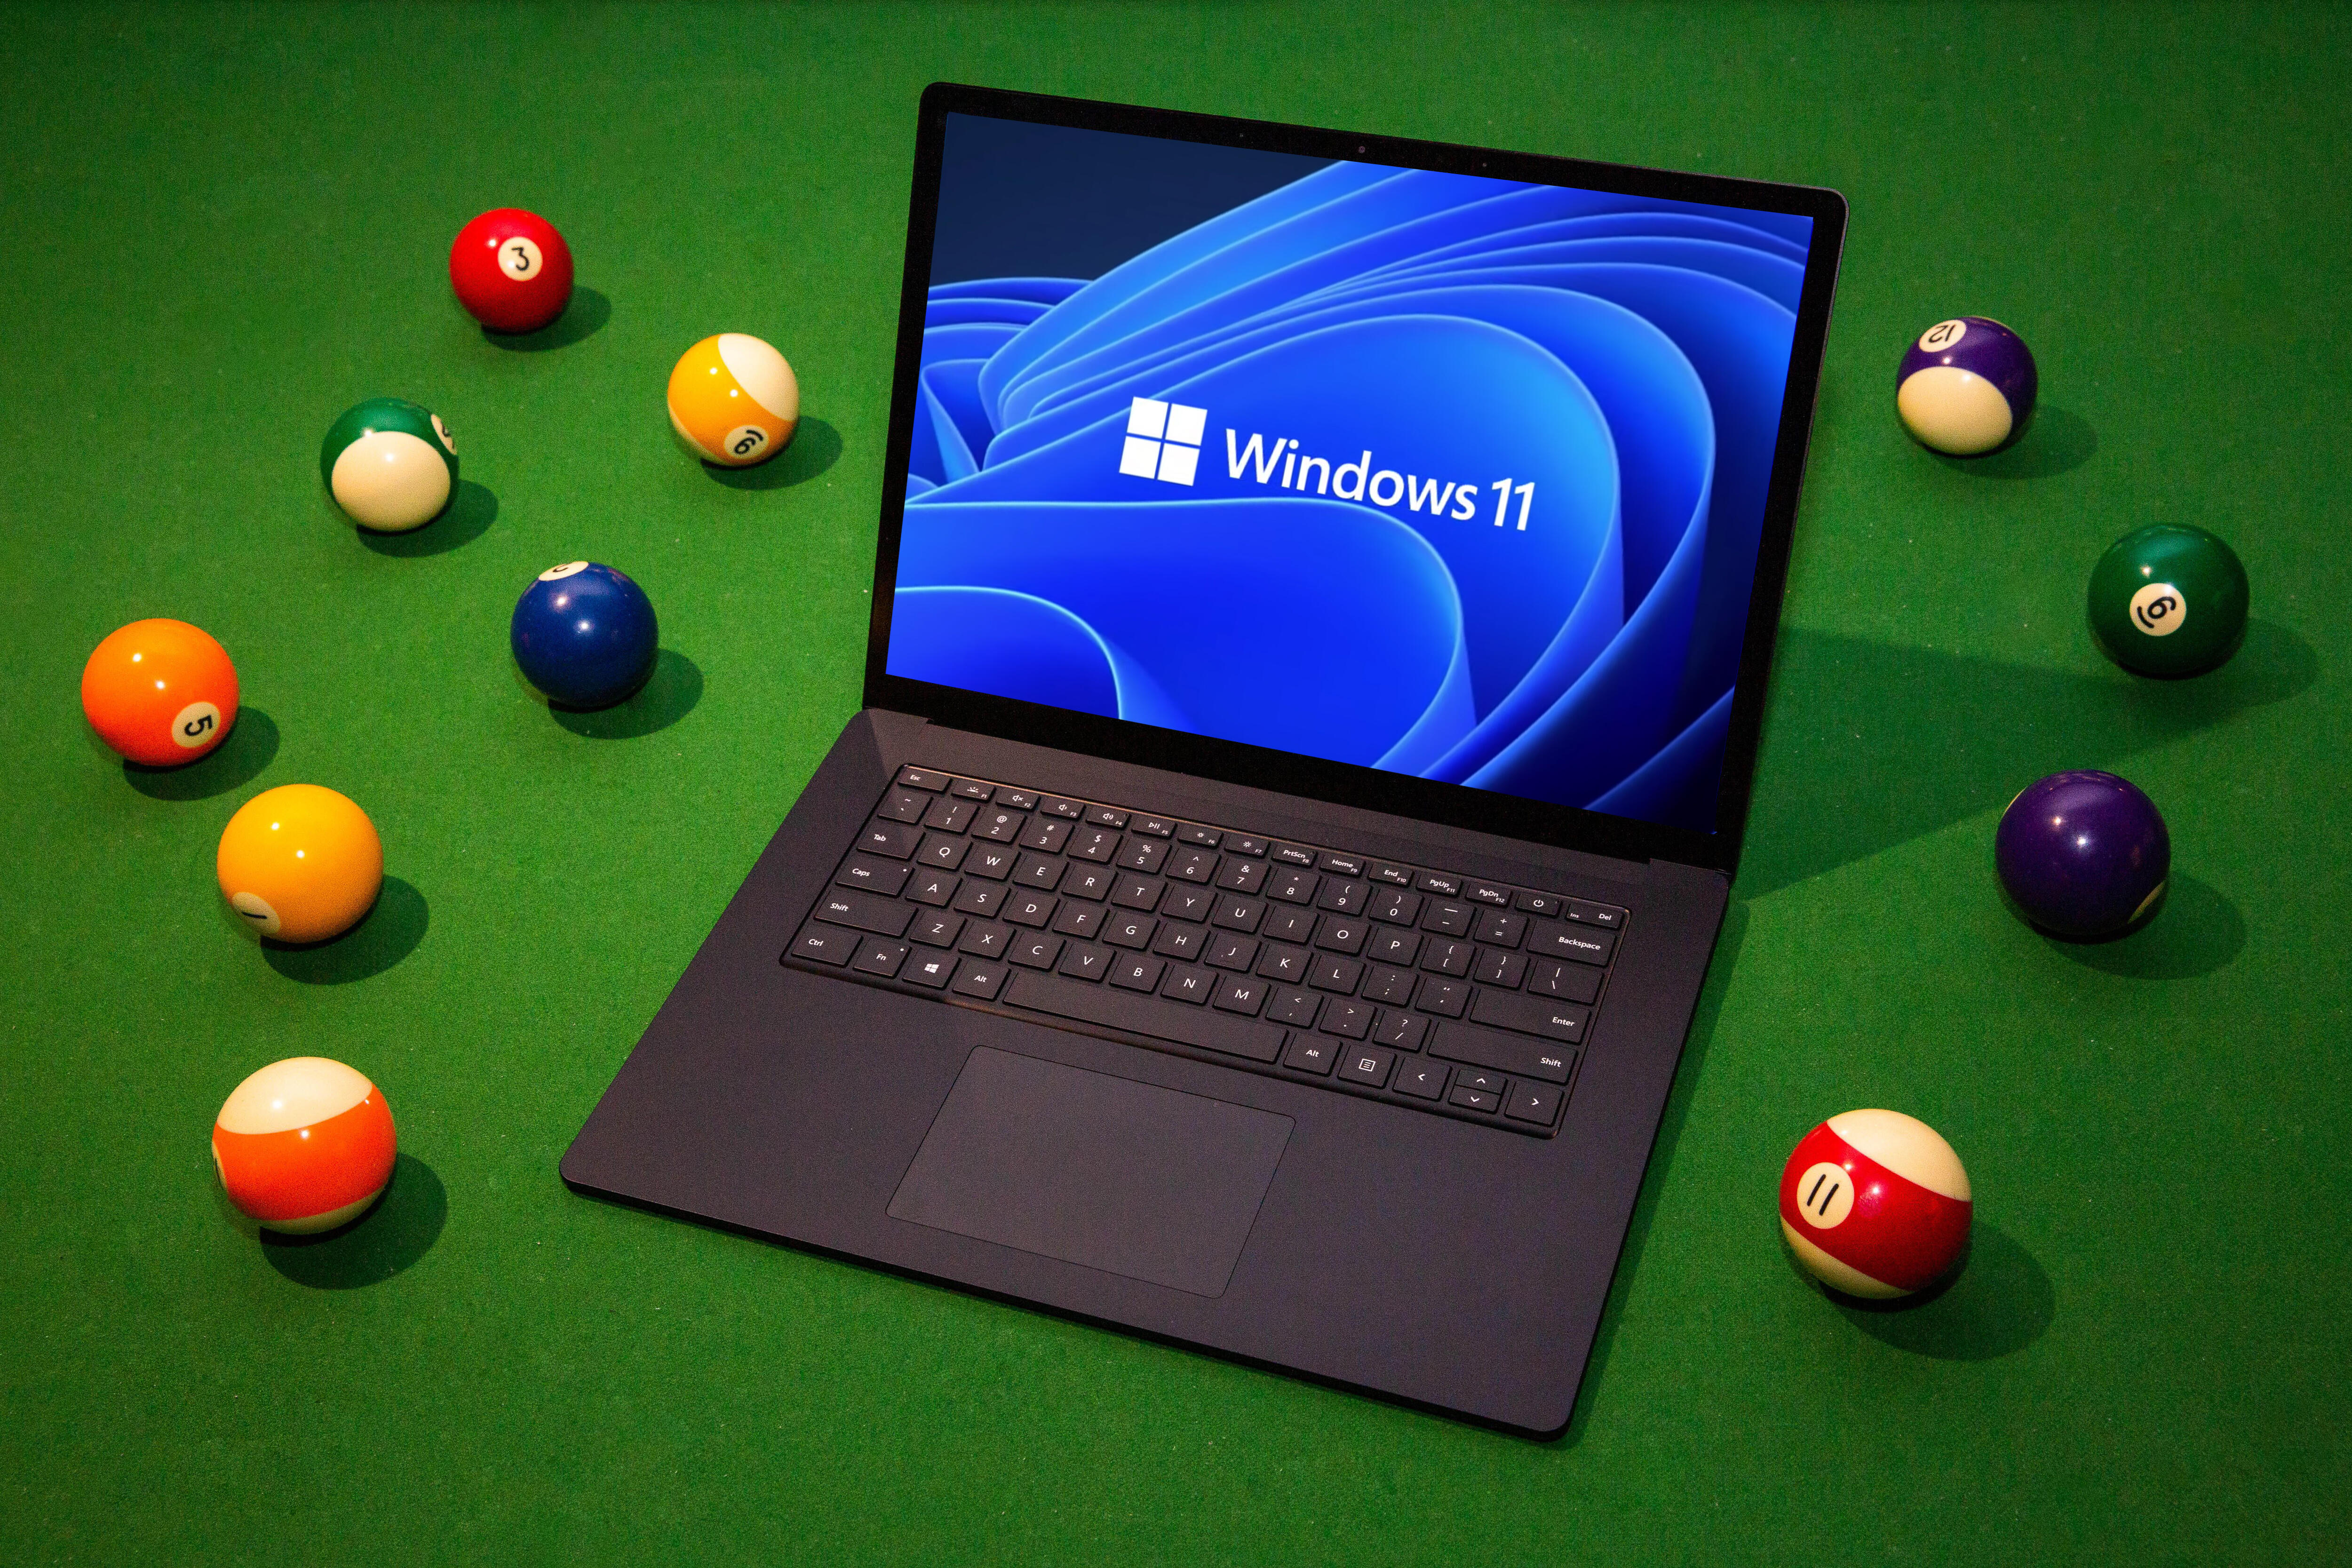 Windows 11 release date sounds like it'll be sooner than we first thought - CNET